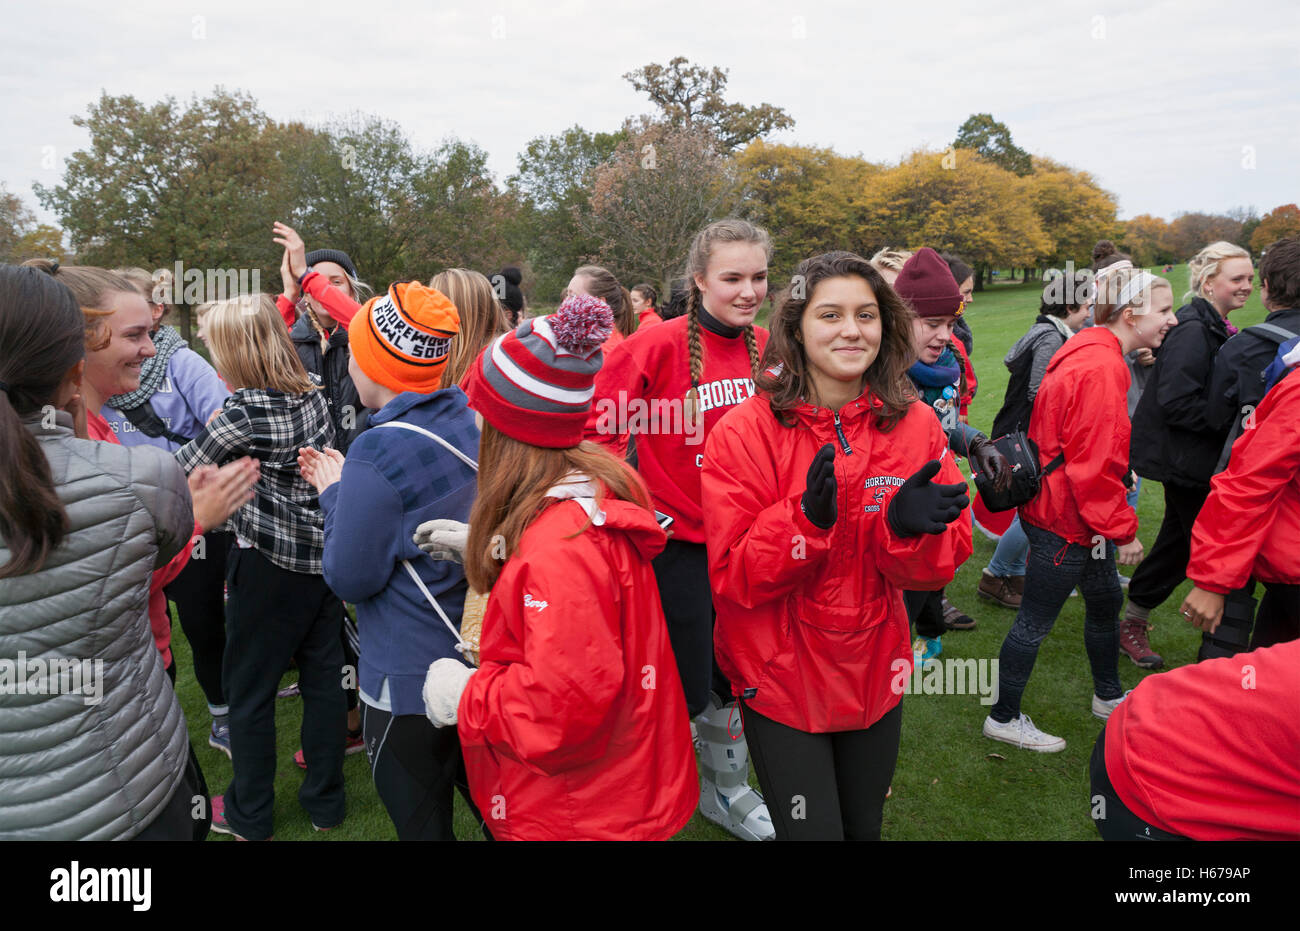 The Shorewood High School girls' Cross Country team prepares for a Sectional meet in Wisconsin. - Stock Image